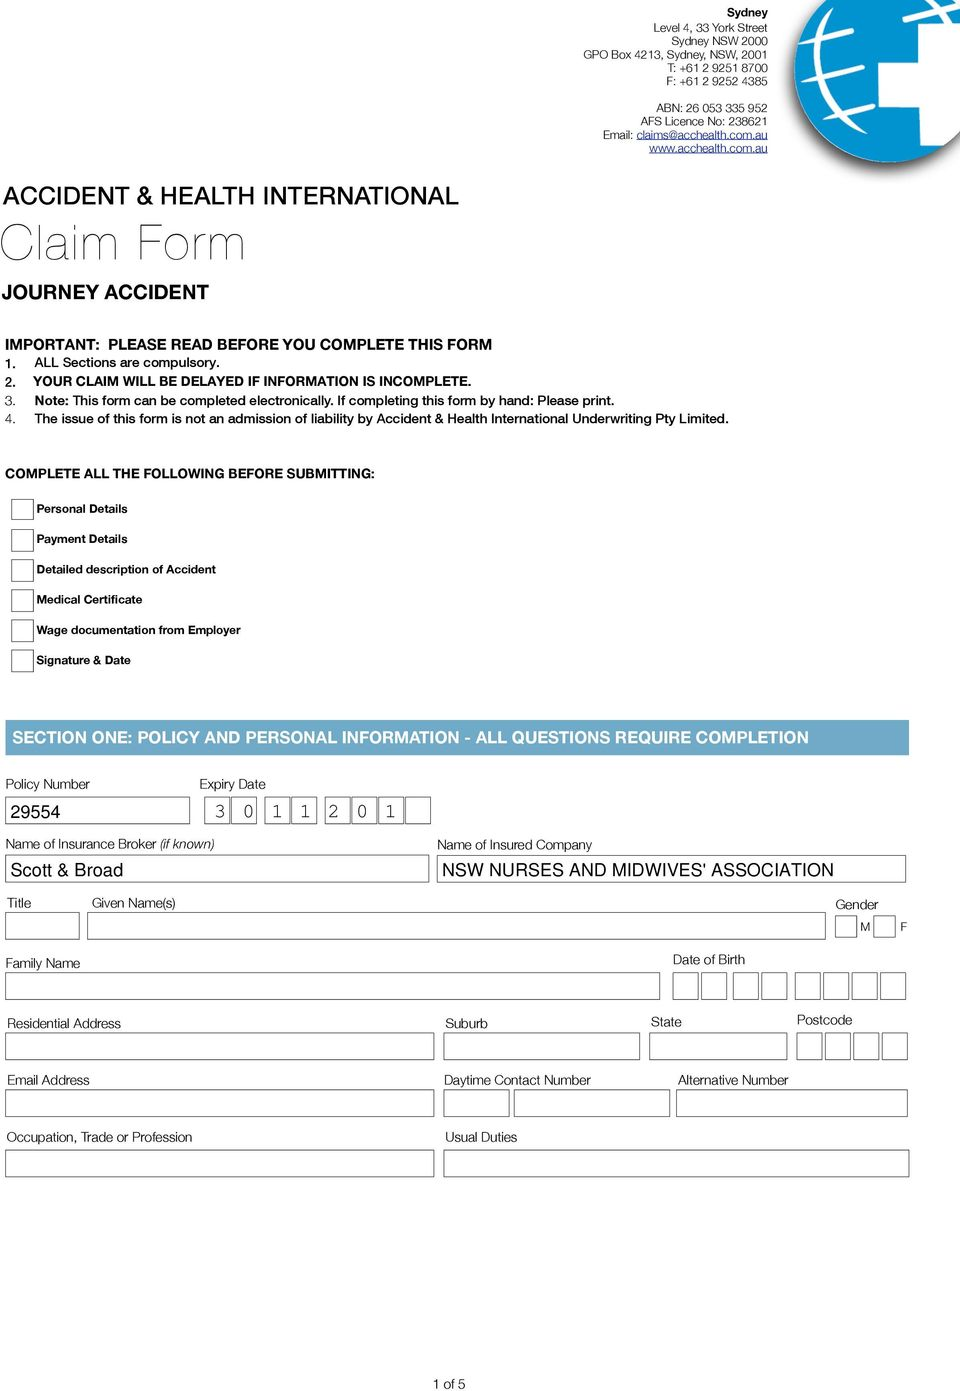 YOUR CLAIM WILL BE DELAYED IF INFORMATION IS INCOMPLETE. 3. te: This form can be completed electronically. If completing this form by hand: Please print. 4.